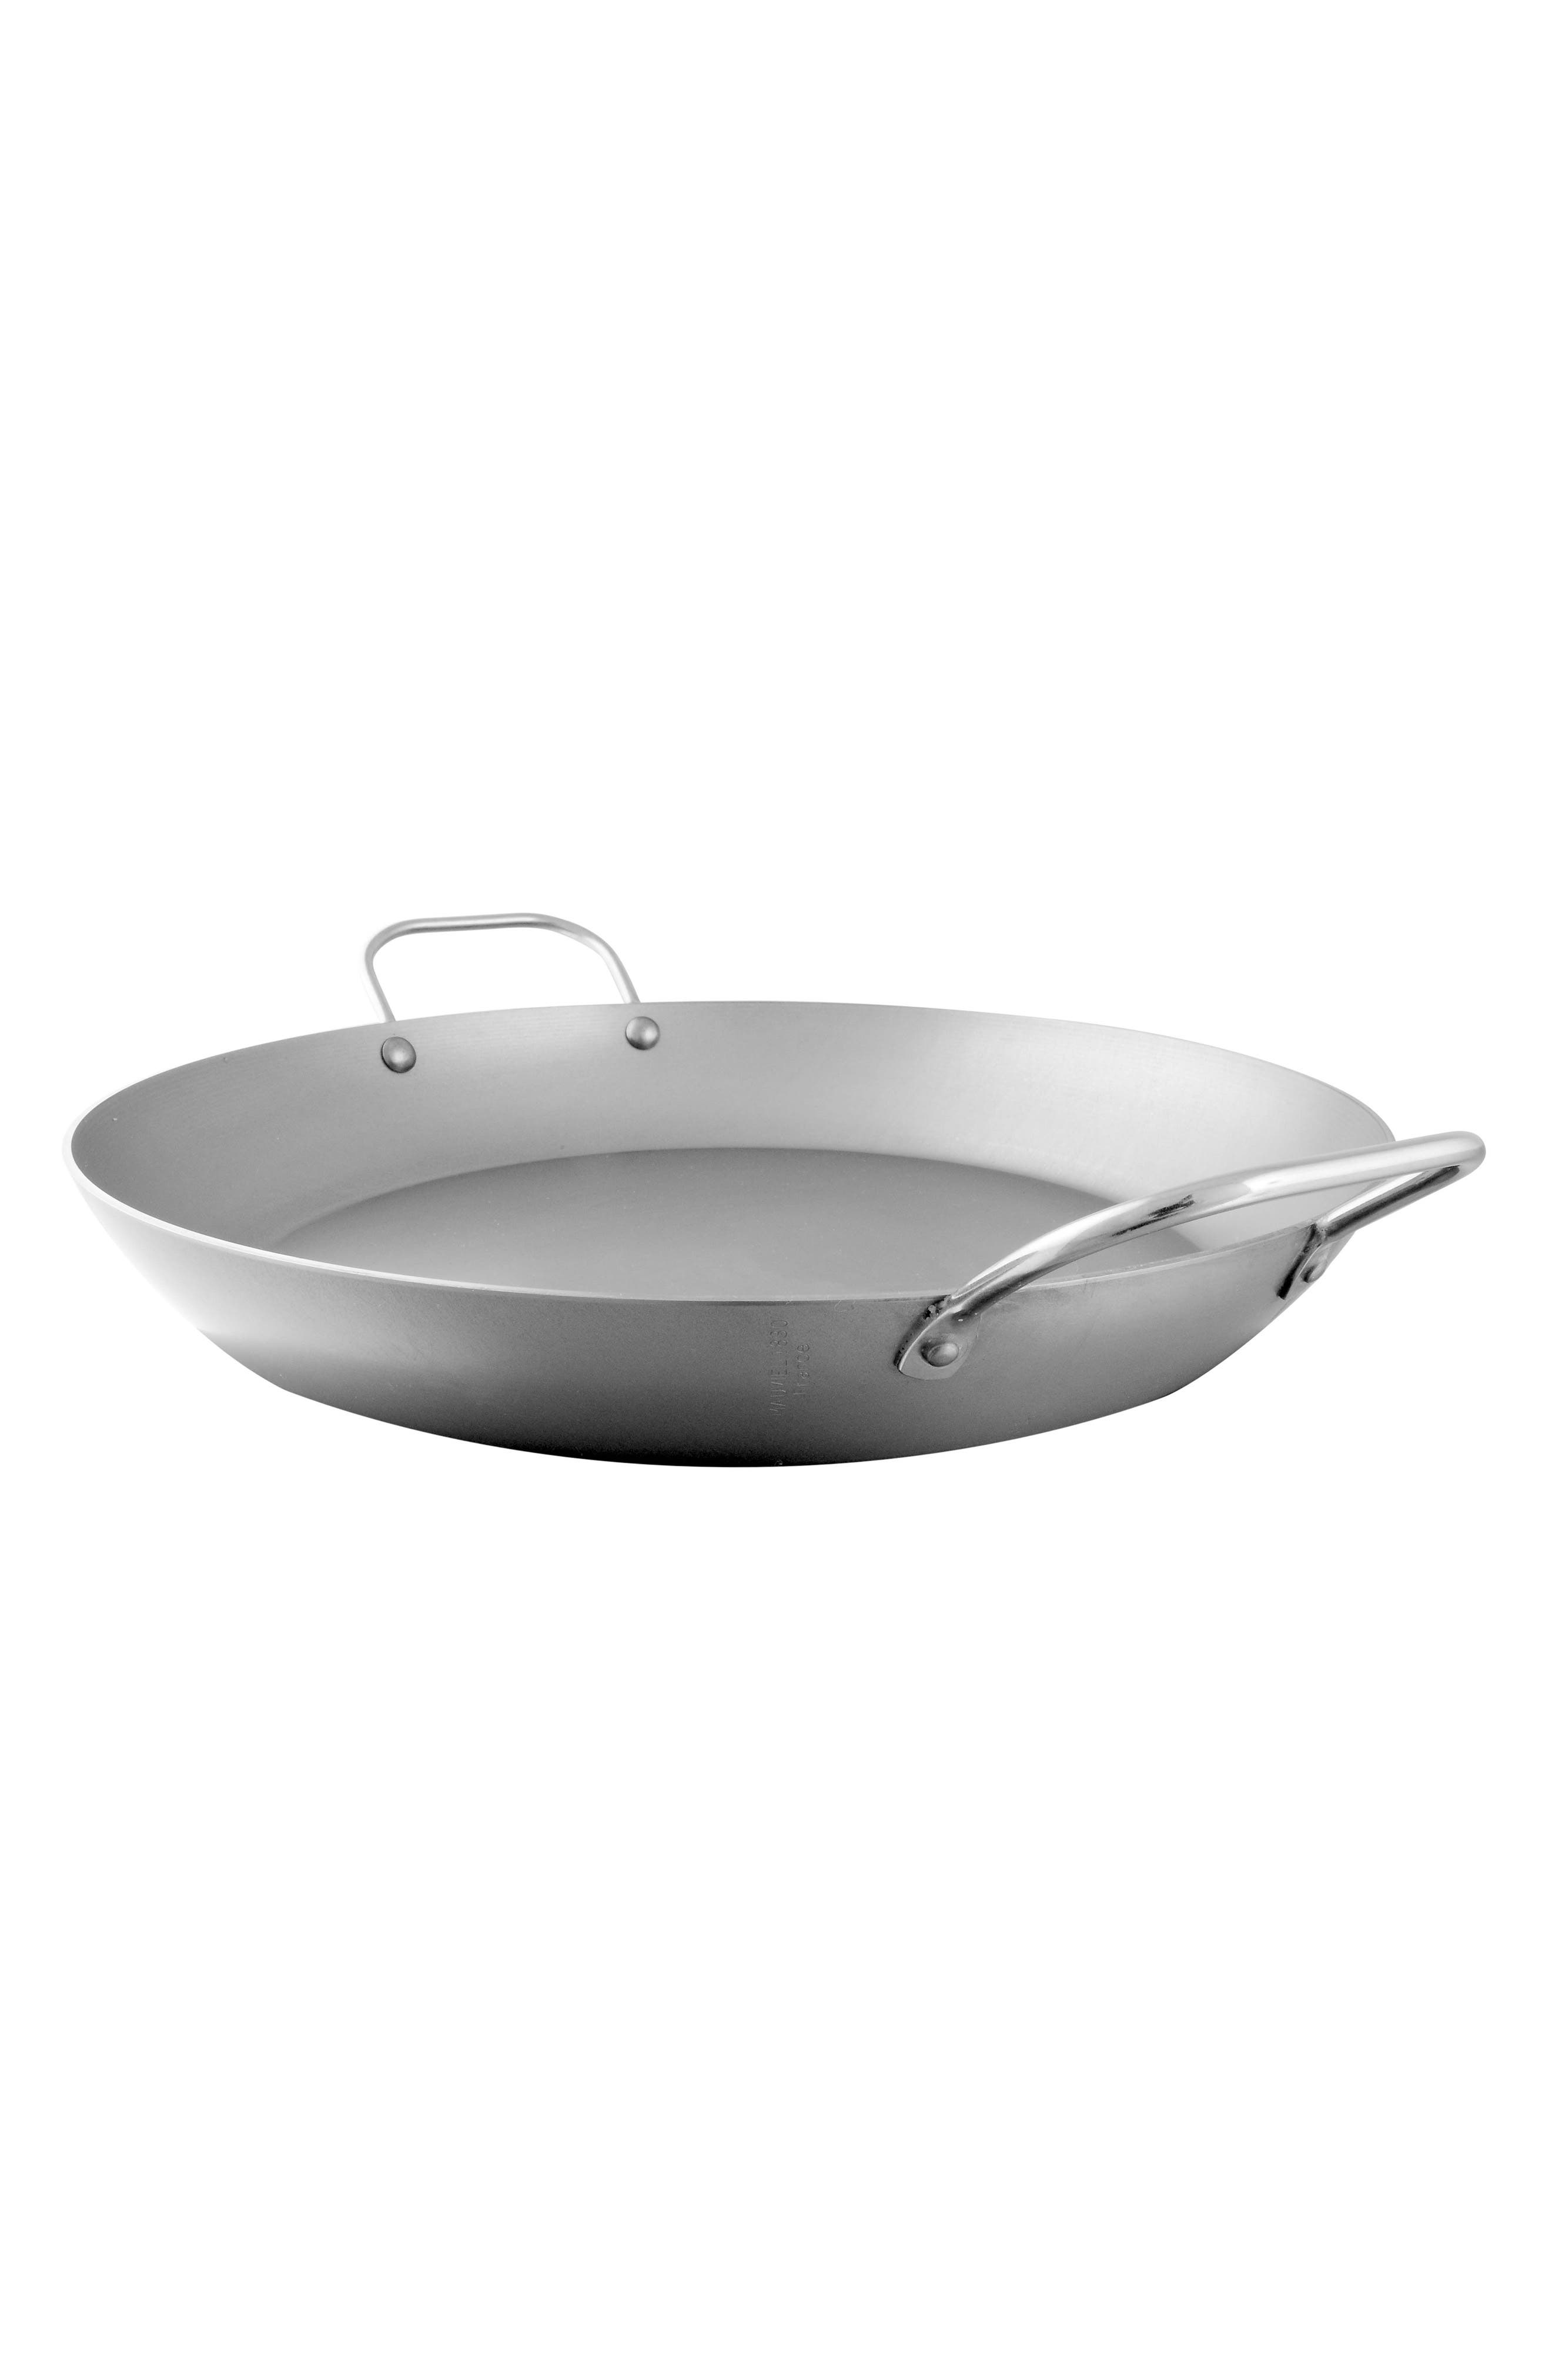 M'steel Carbon Steel Paella Pan,                             Main thumbnail 1, color,                             Steel